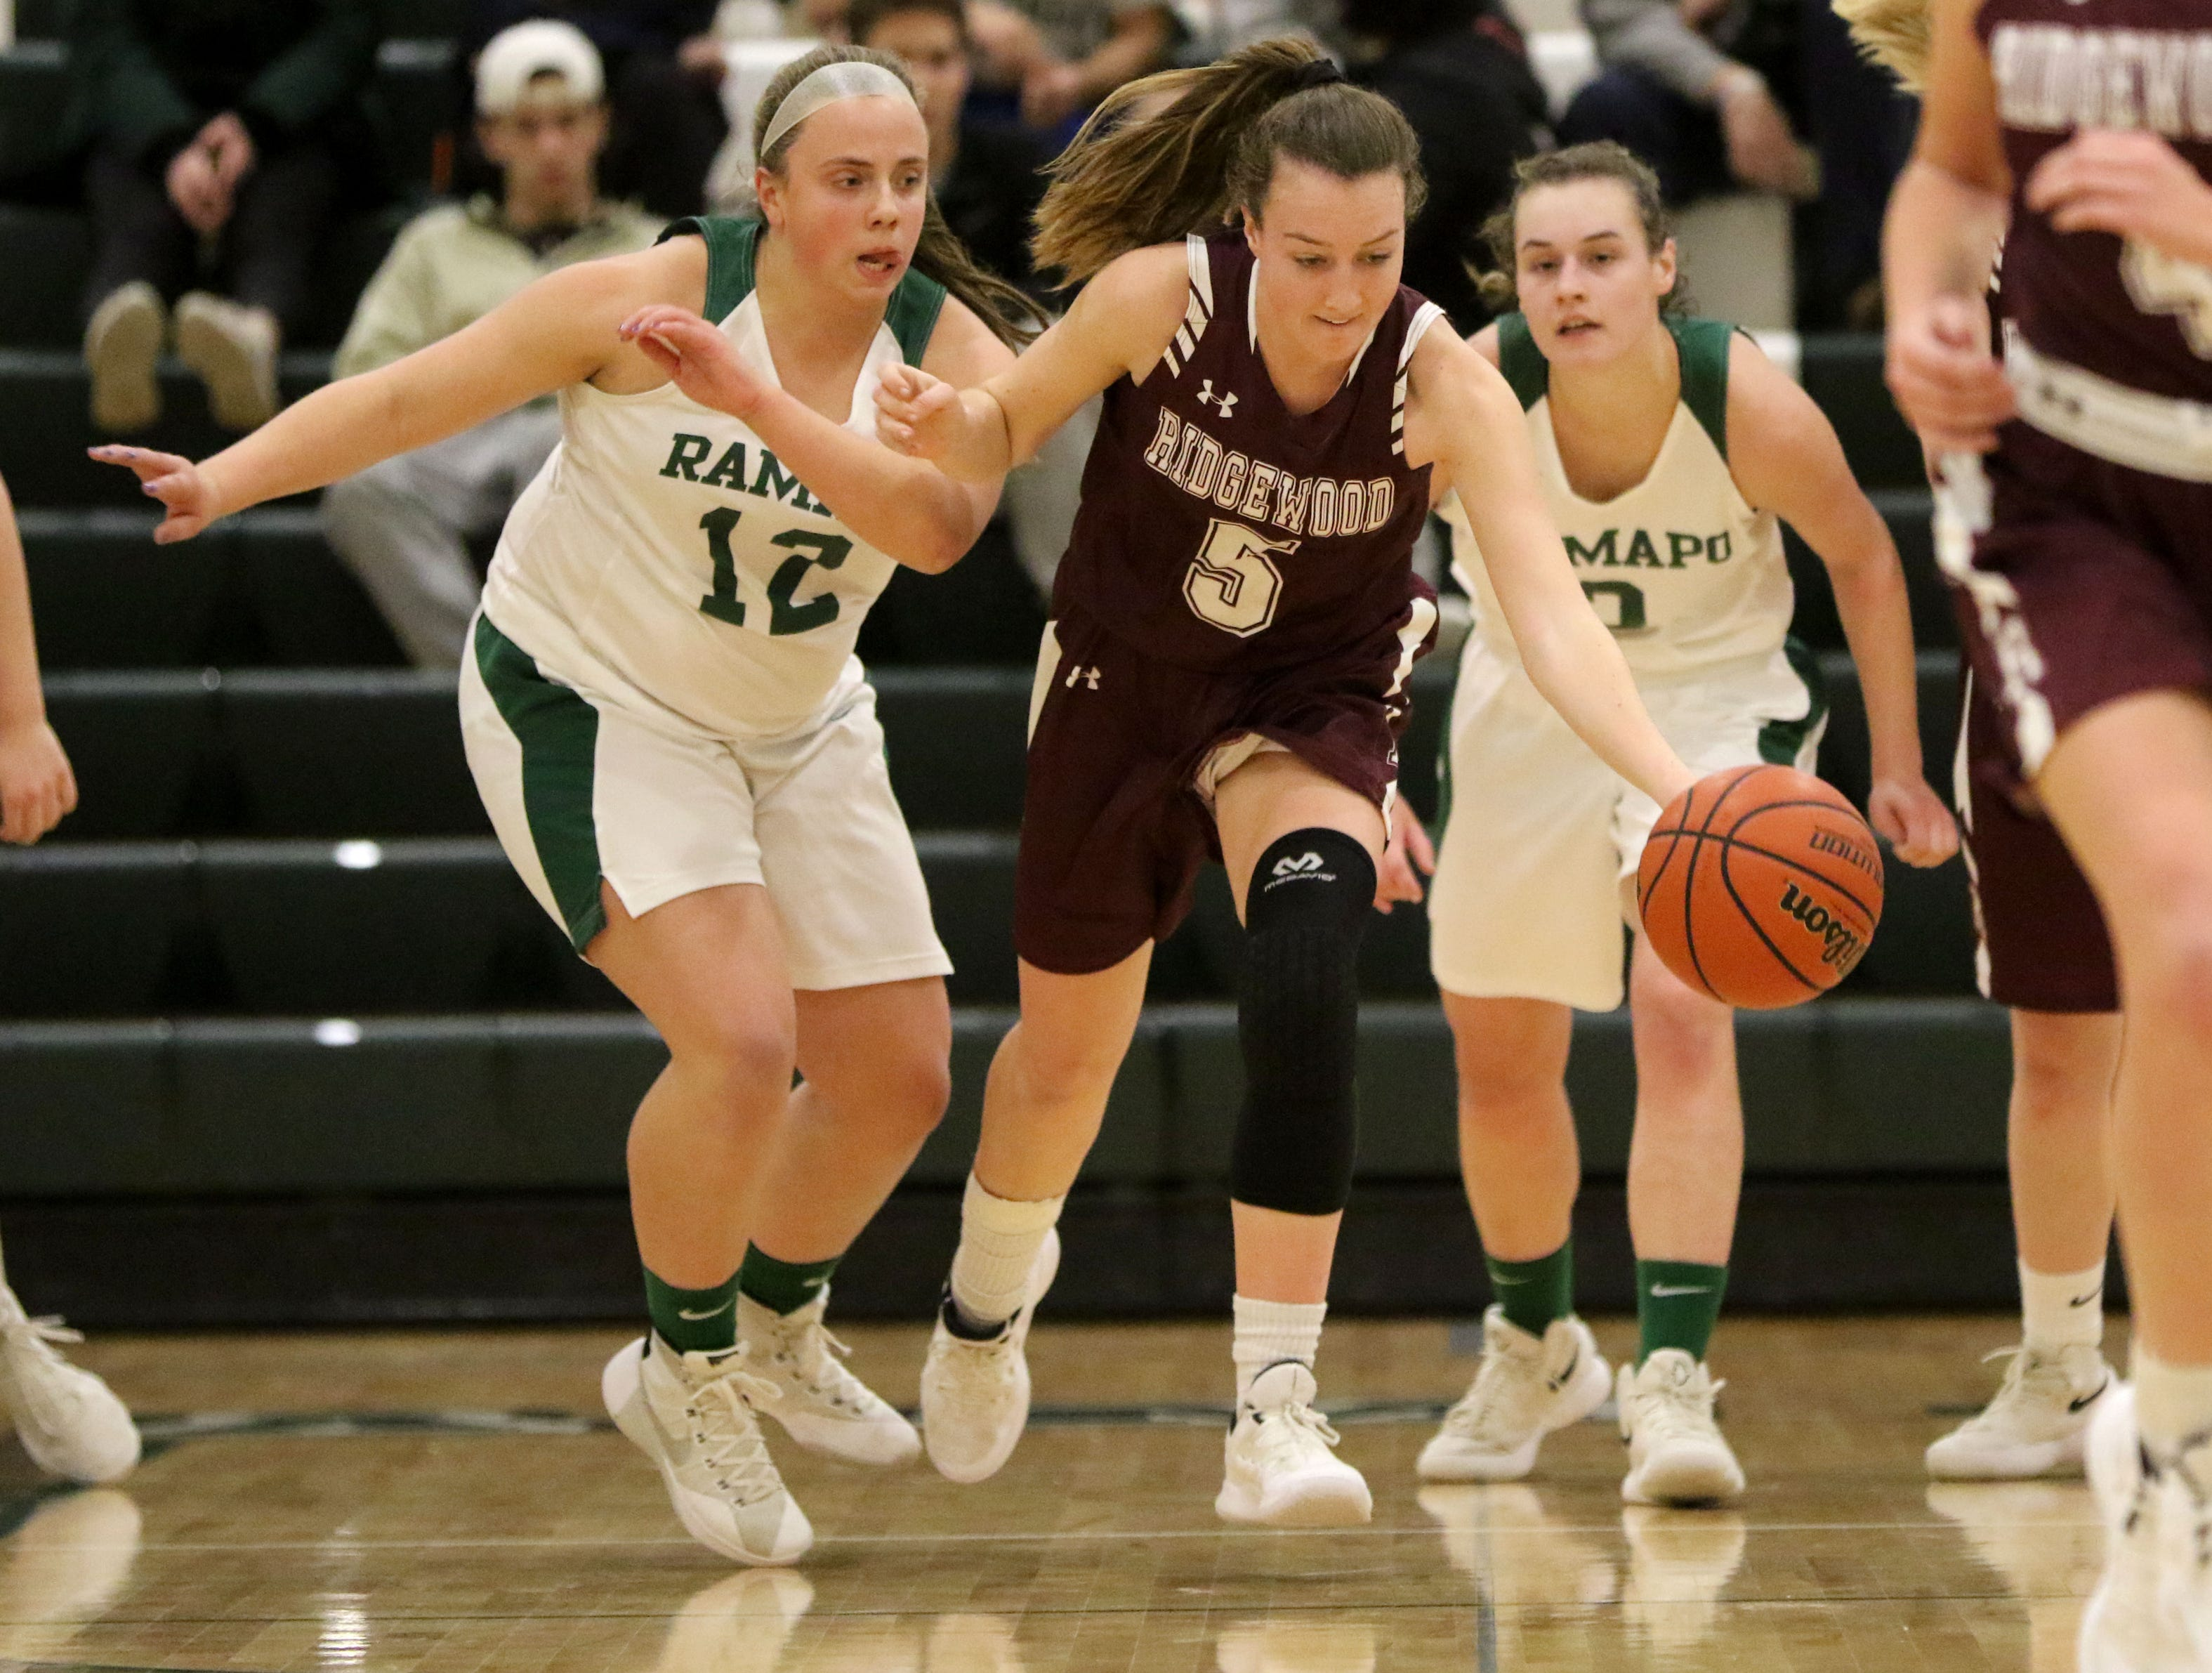 Annie McCarthy, of Ridgewood, leads the break away against the Ramapo defense. Thursday, January 10, 2019